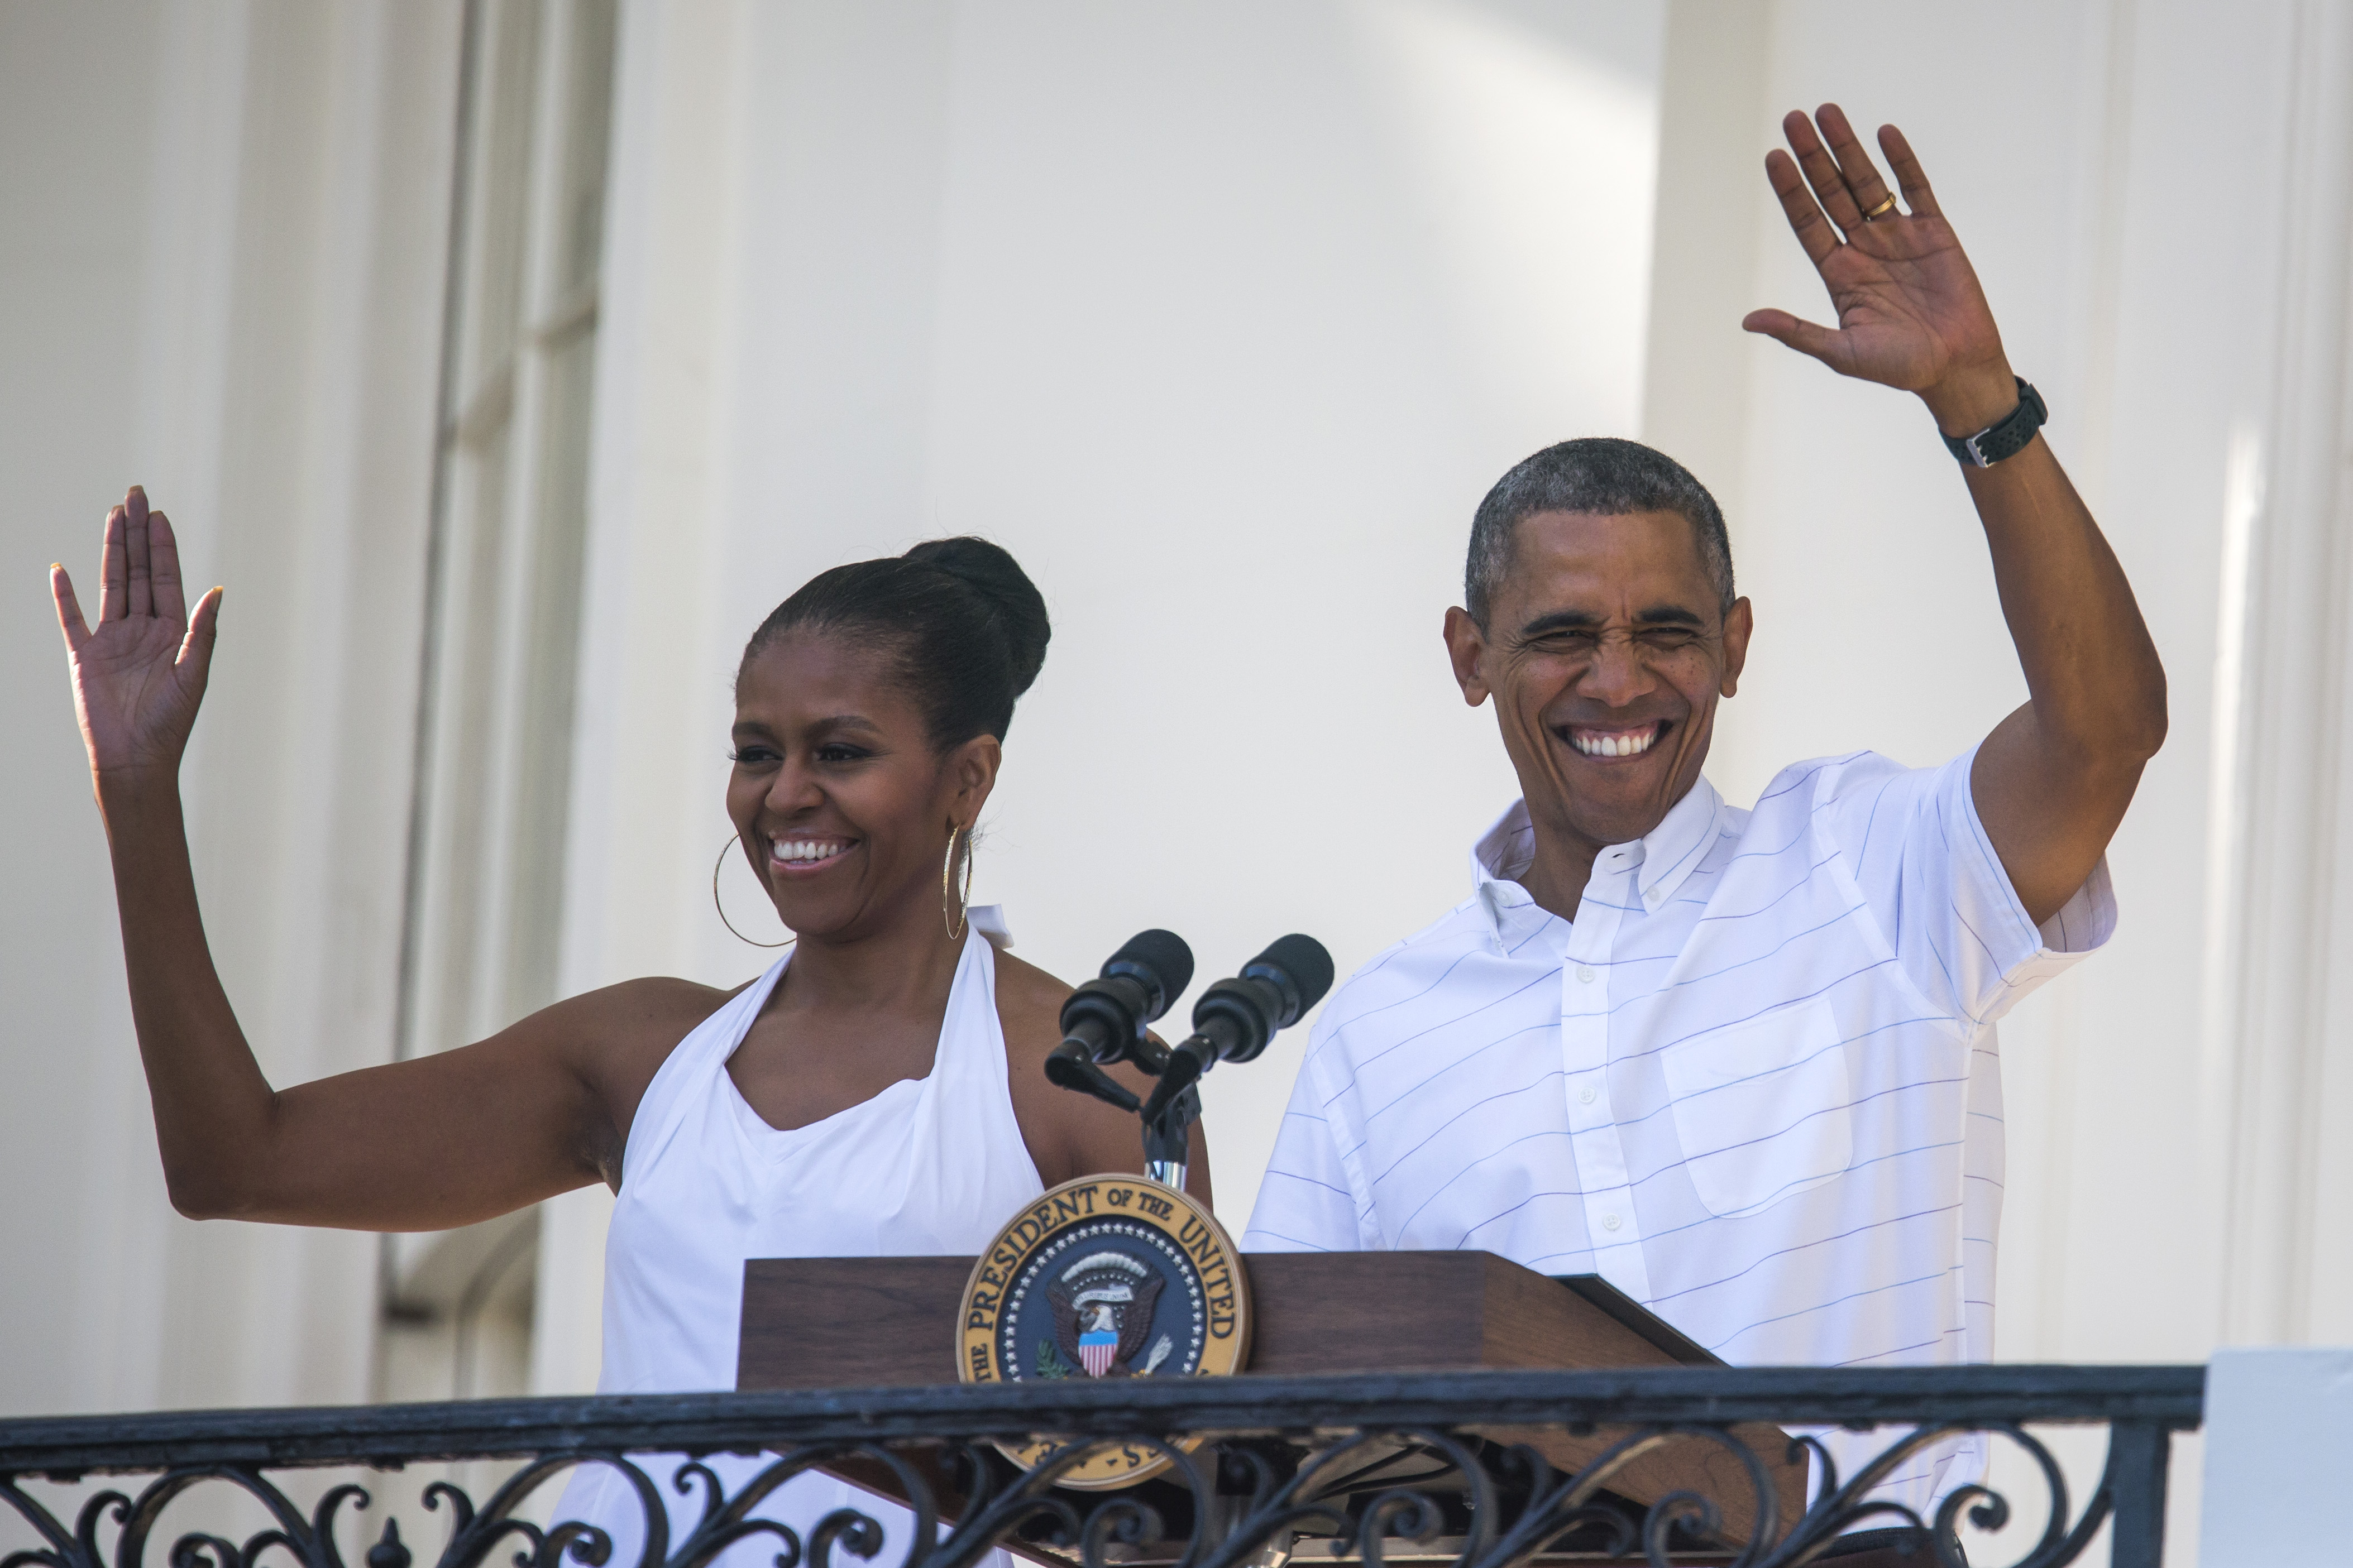 U.S. President Barack Obama and first lady Michelle Obama wave from the South Portico to U.S. veterans and their families, as well as White House staff, during an Independence Day barbecue on the South Lawn of the White House on on July 4, 2014, in Washington, D.C. (Photo by Jim Lo Scalzo-Pool/Getty Images)